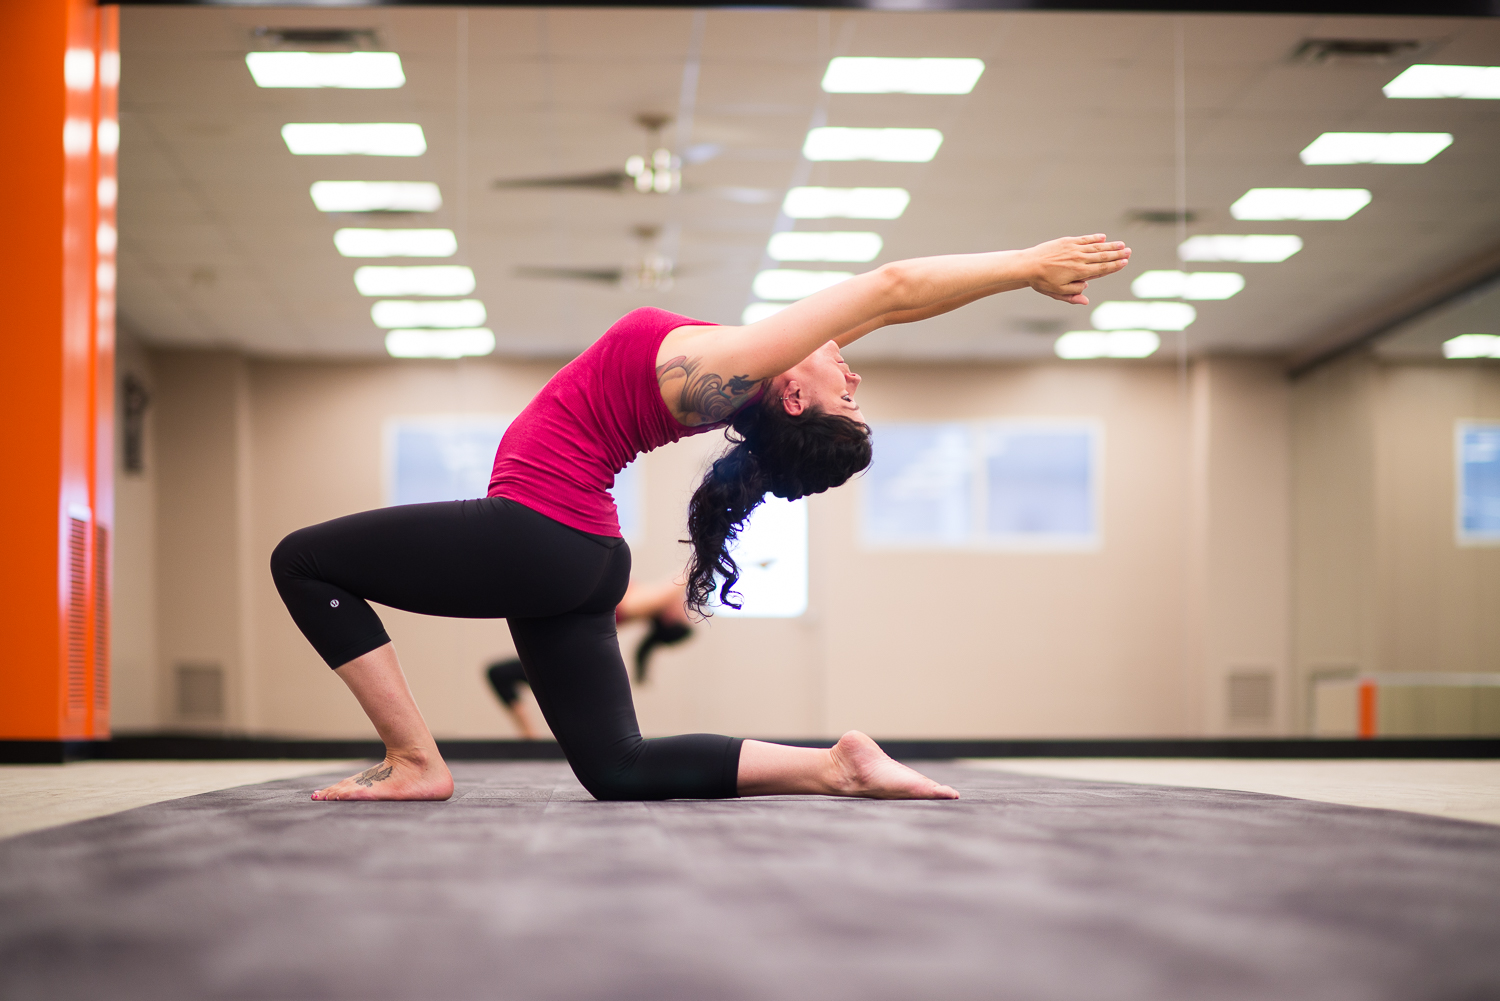 edmonton-fitness-yoga-photographer-sean-williams-commercial-editorial-workout-lululemon-4.jpg